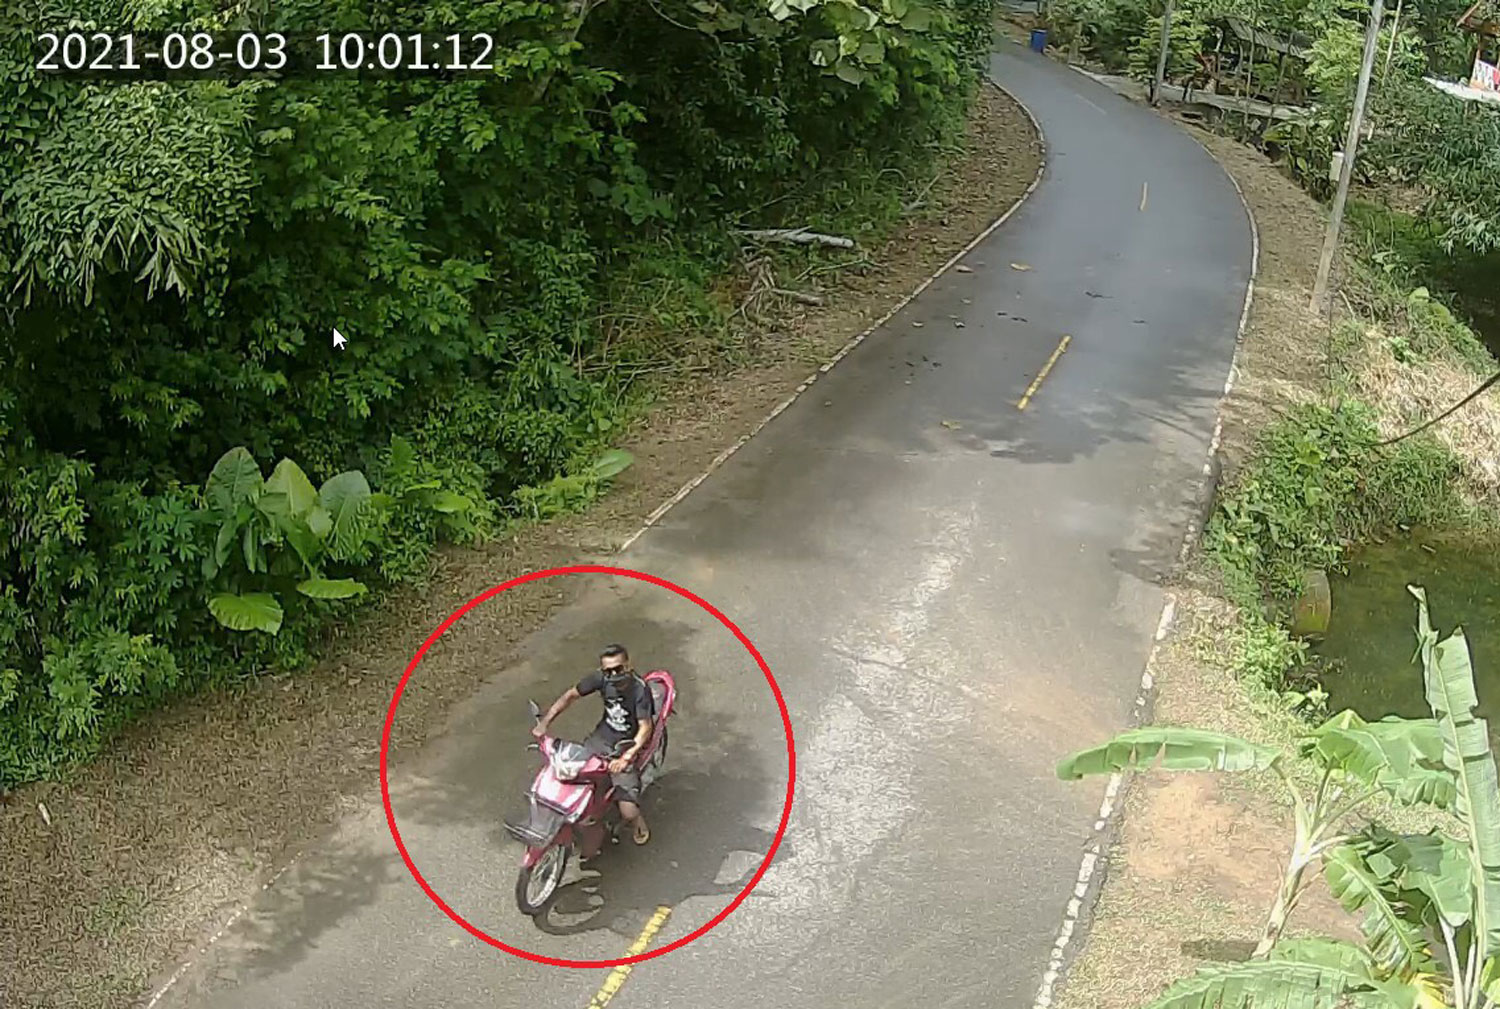 A security camera captured this image of a 27-year-old man seen riding near Ton Ao Yon waterfall, where the body of a Swiss tourist was discovered on Thursday afternoon. (CCTV image supplied)